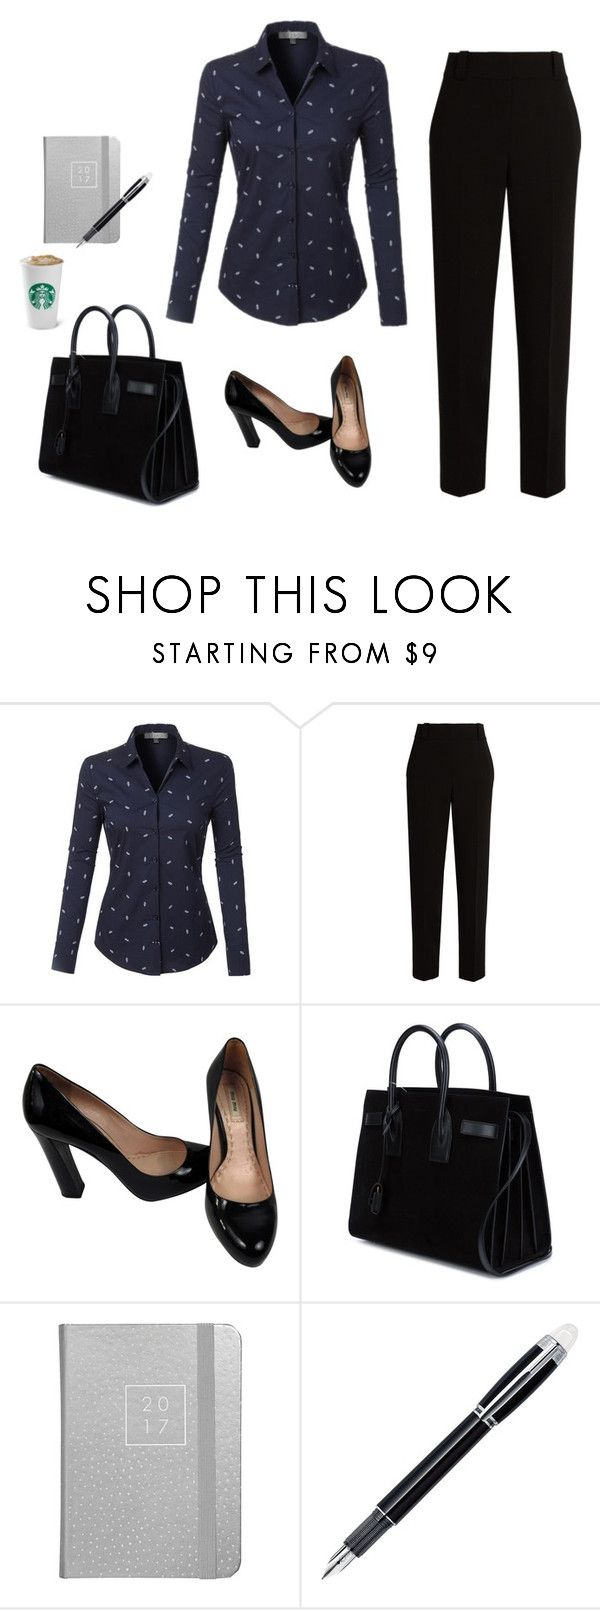 """Business look"" by monika1555 on Polyvore featuring LE3NO, The Row, Miu Miu, Yves Saint Laurent and Montblanc"